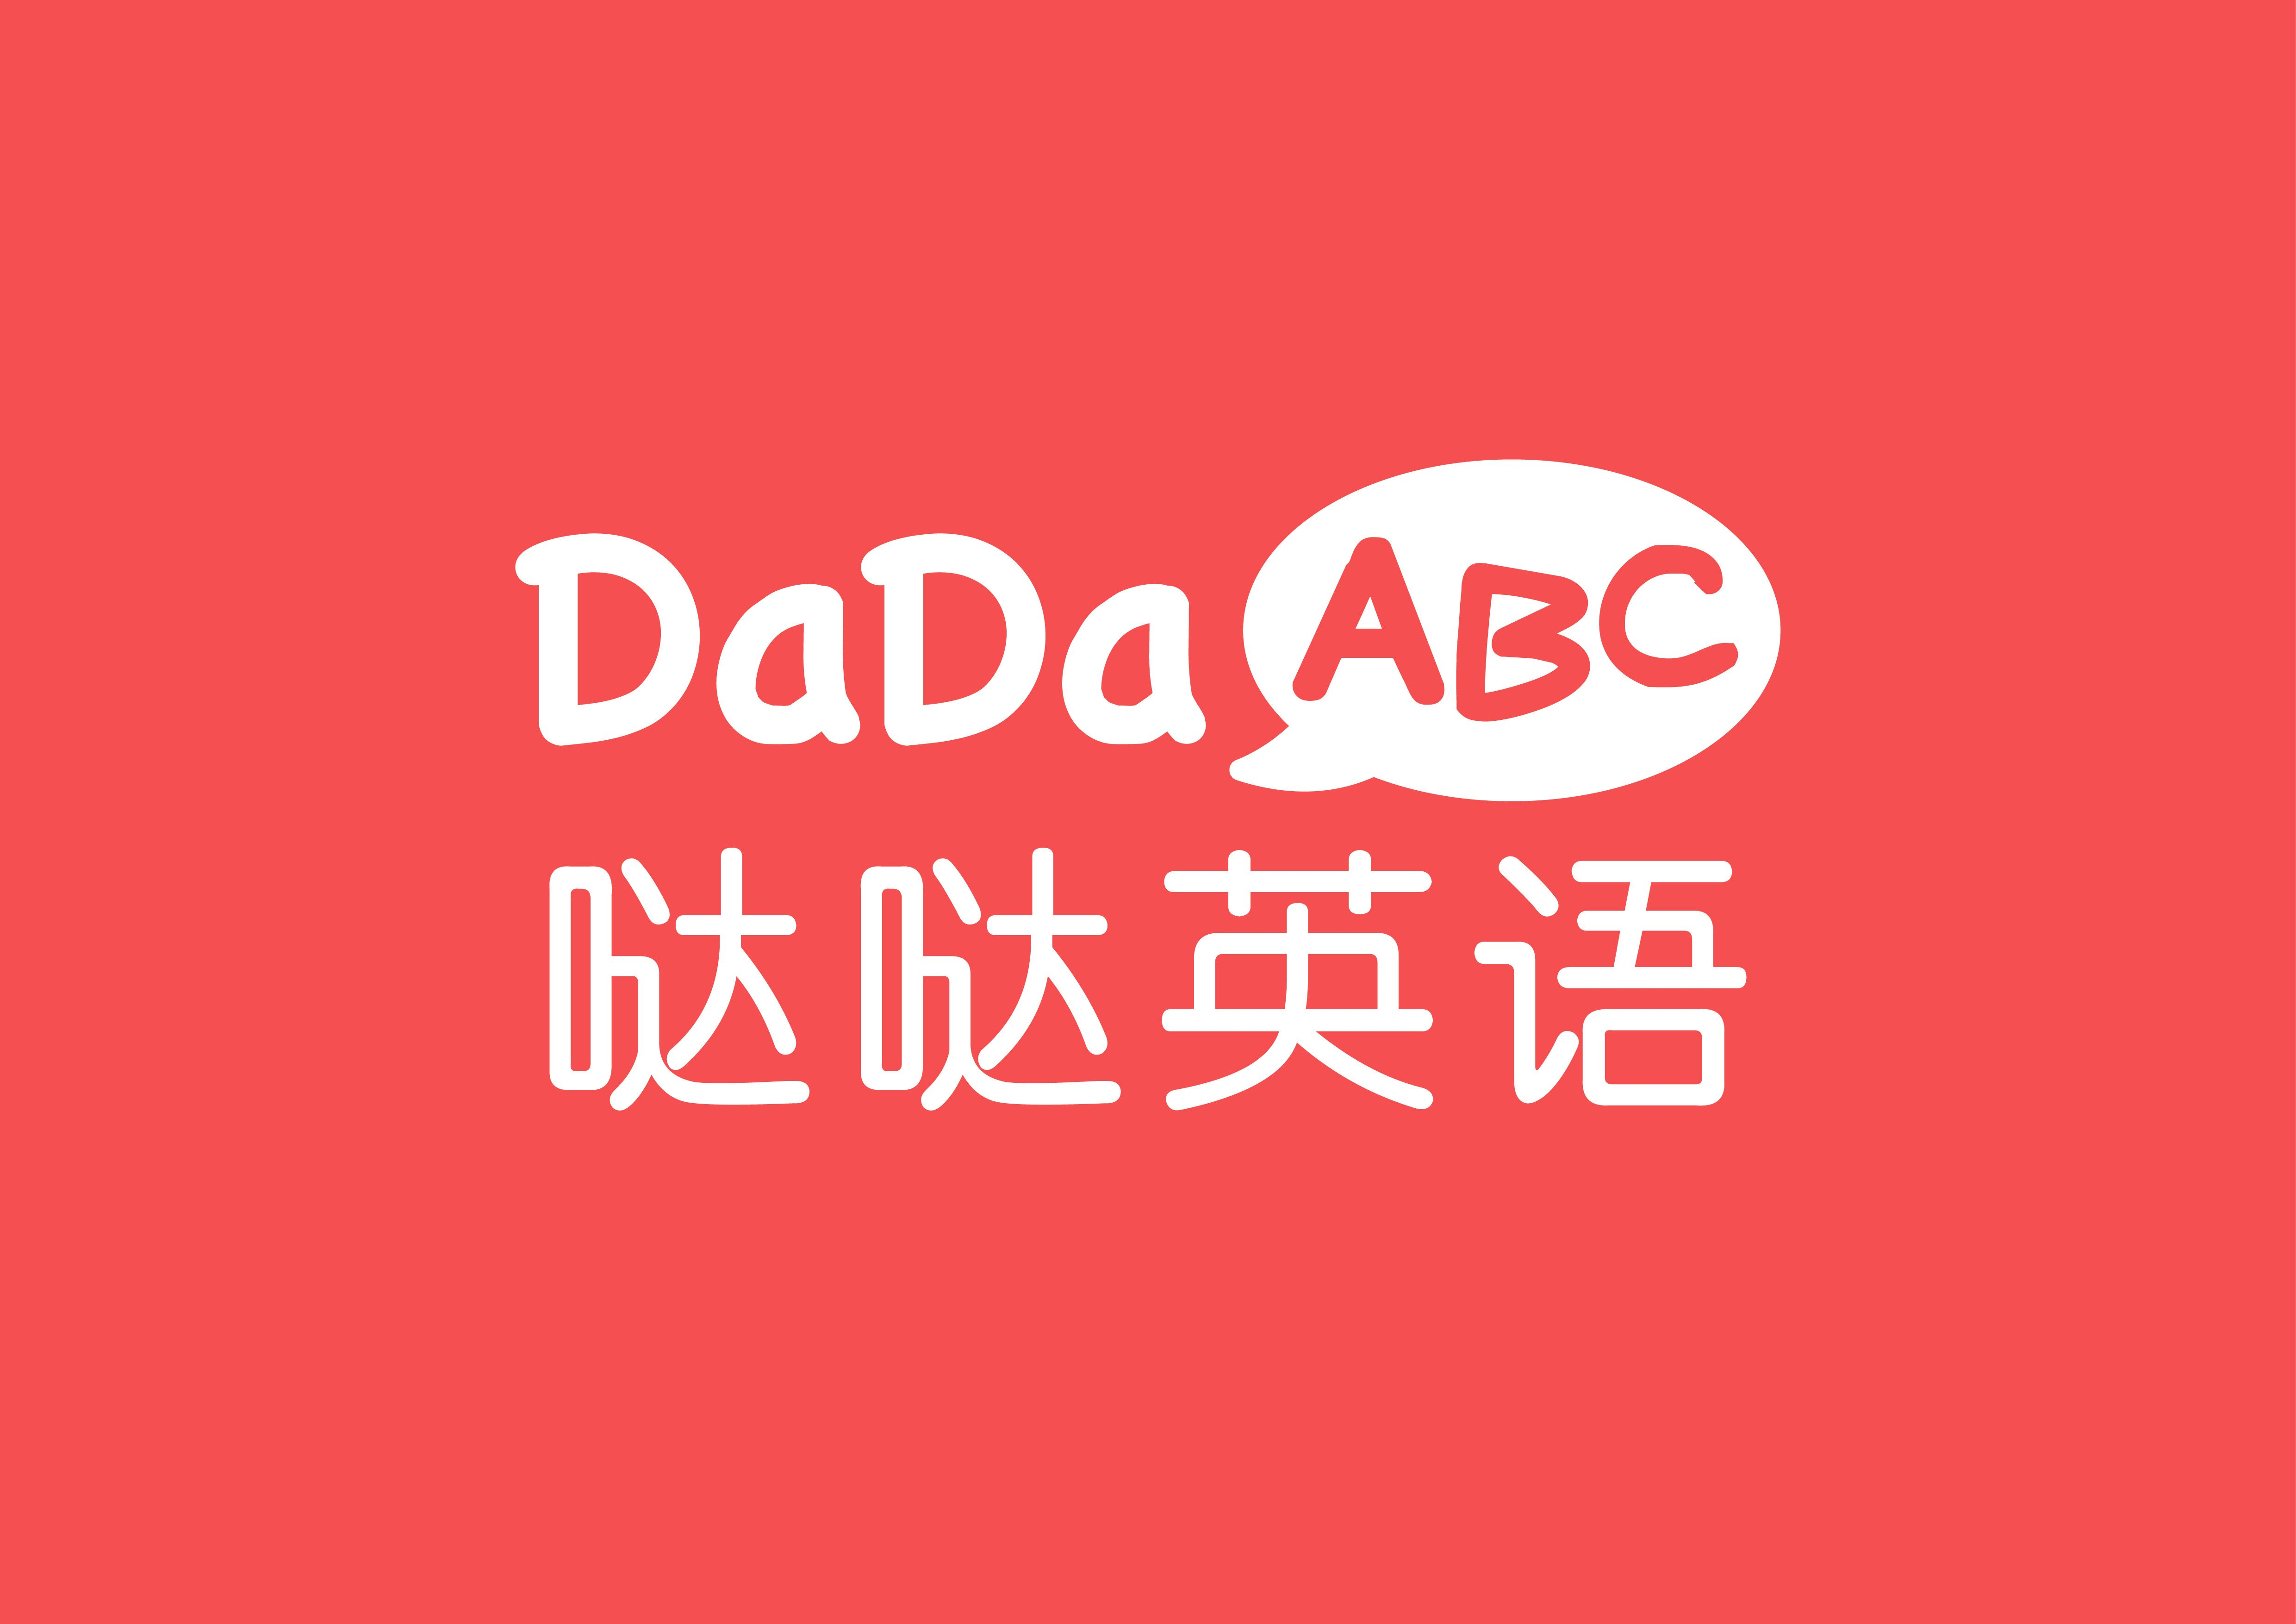 Work from home and teach English online with DaDaABC.